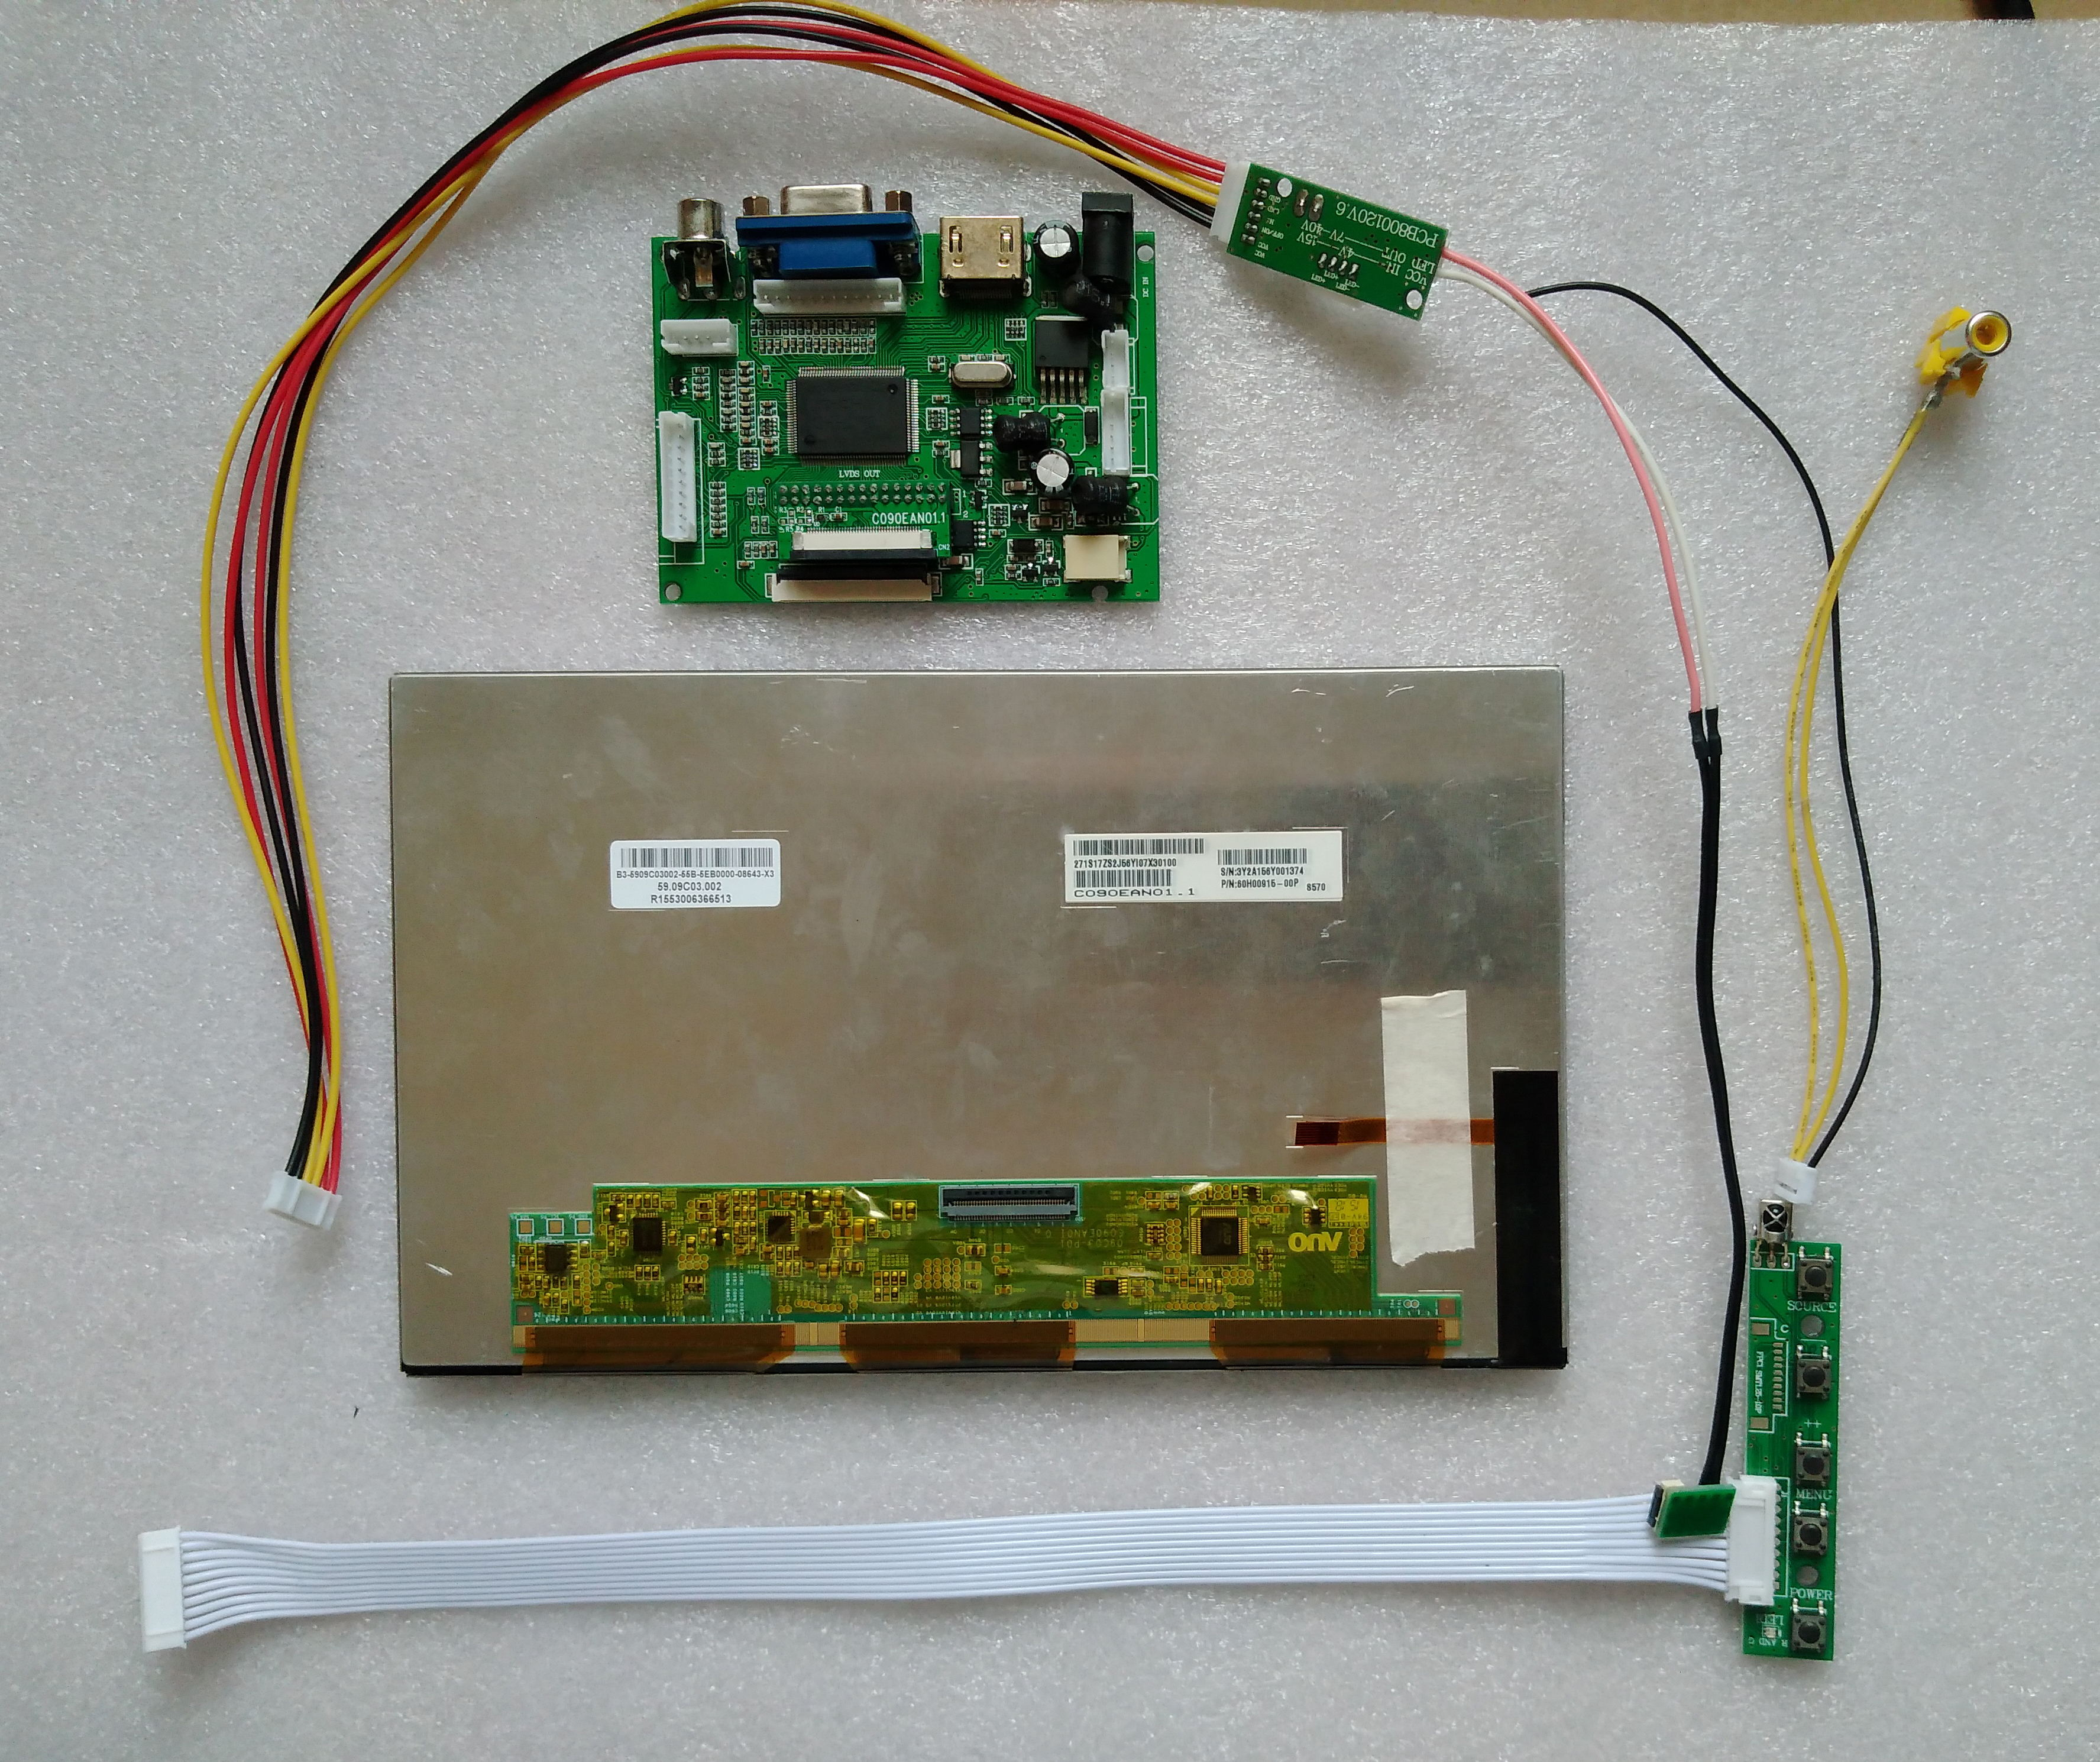 9inch 1280 720 680ccd CARPC DIY USB Touch Screen support win7 win8 win10 Raspberry Pi Industrial